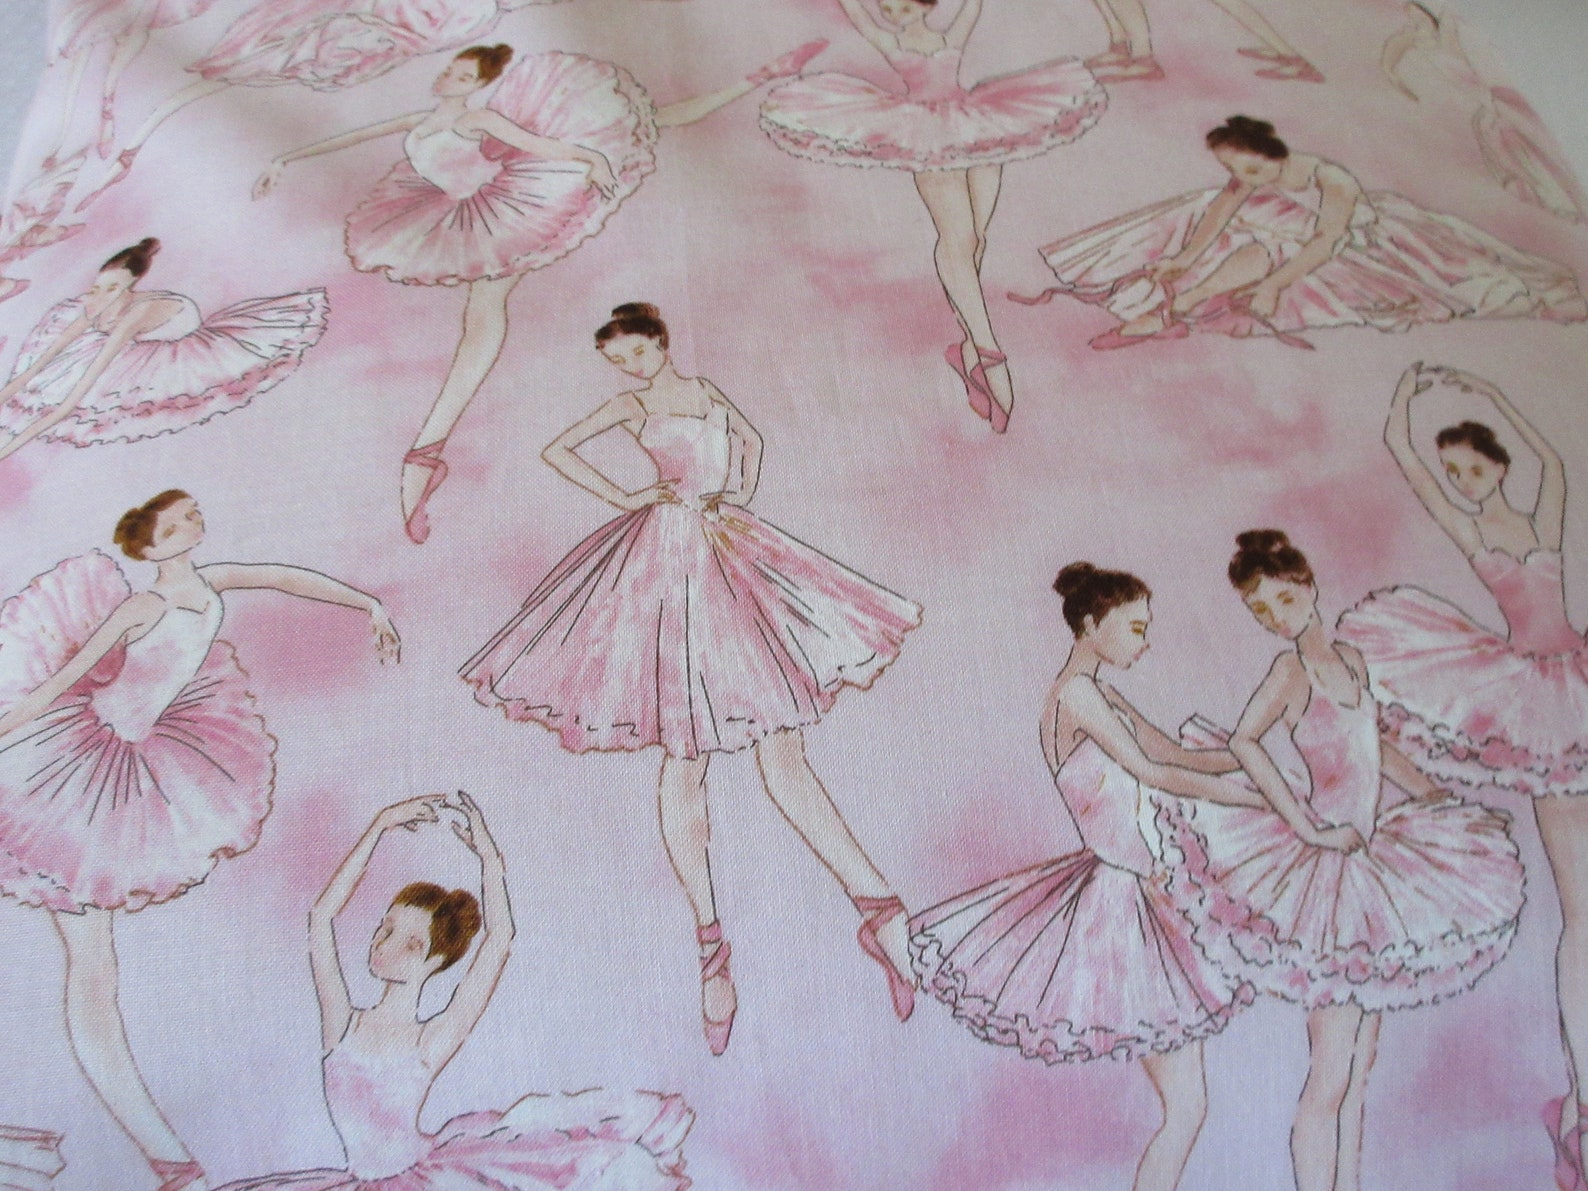 ballerina pillowcases, kids who love dance, ballet lovers gift, girl's pillowcase, gifts for ballerinas